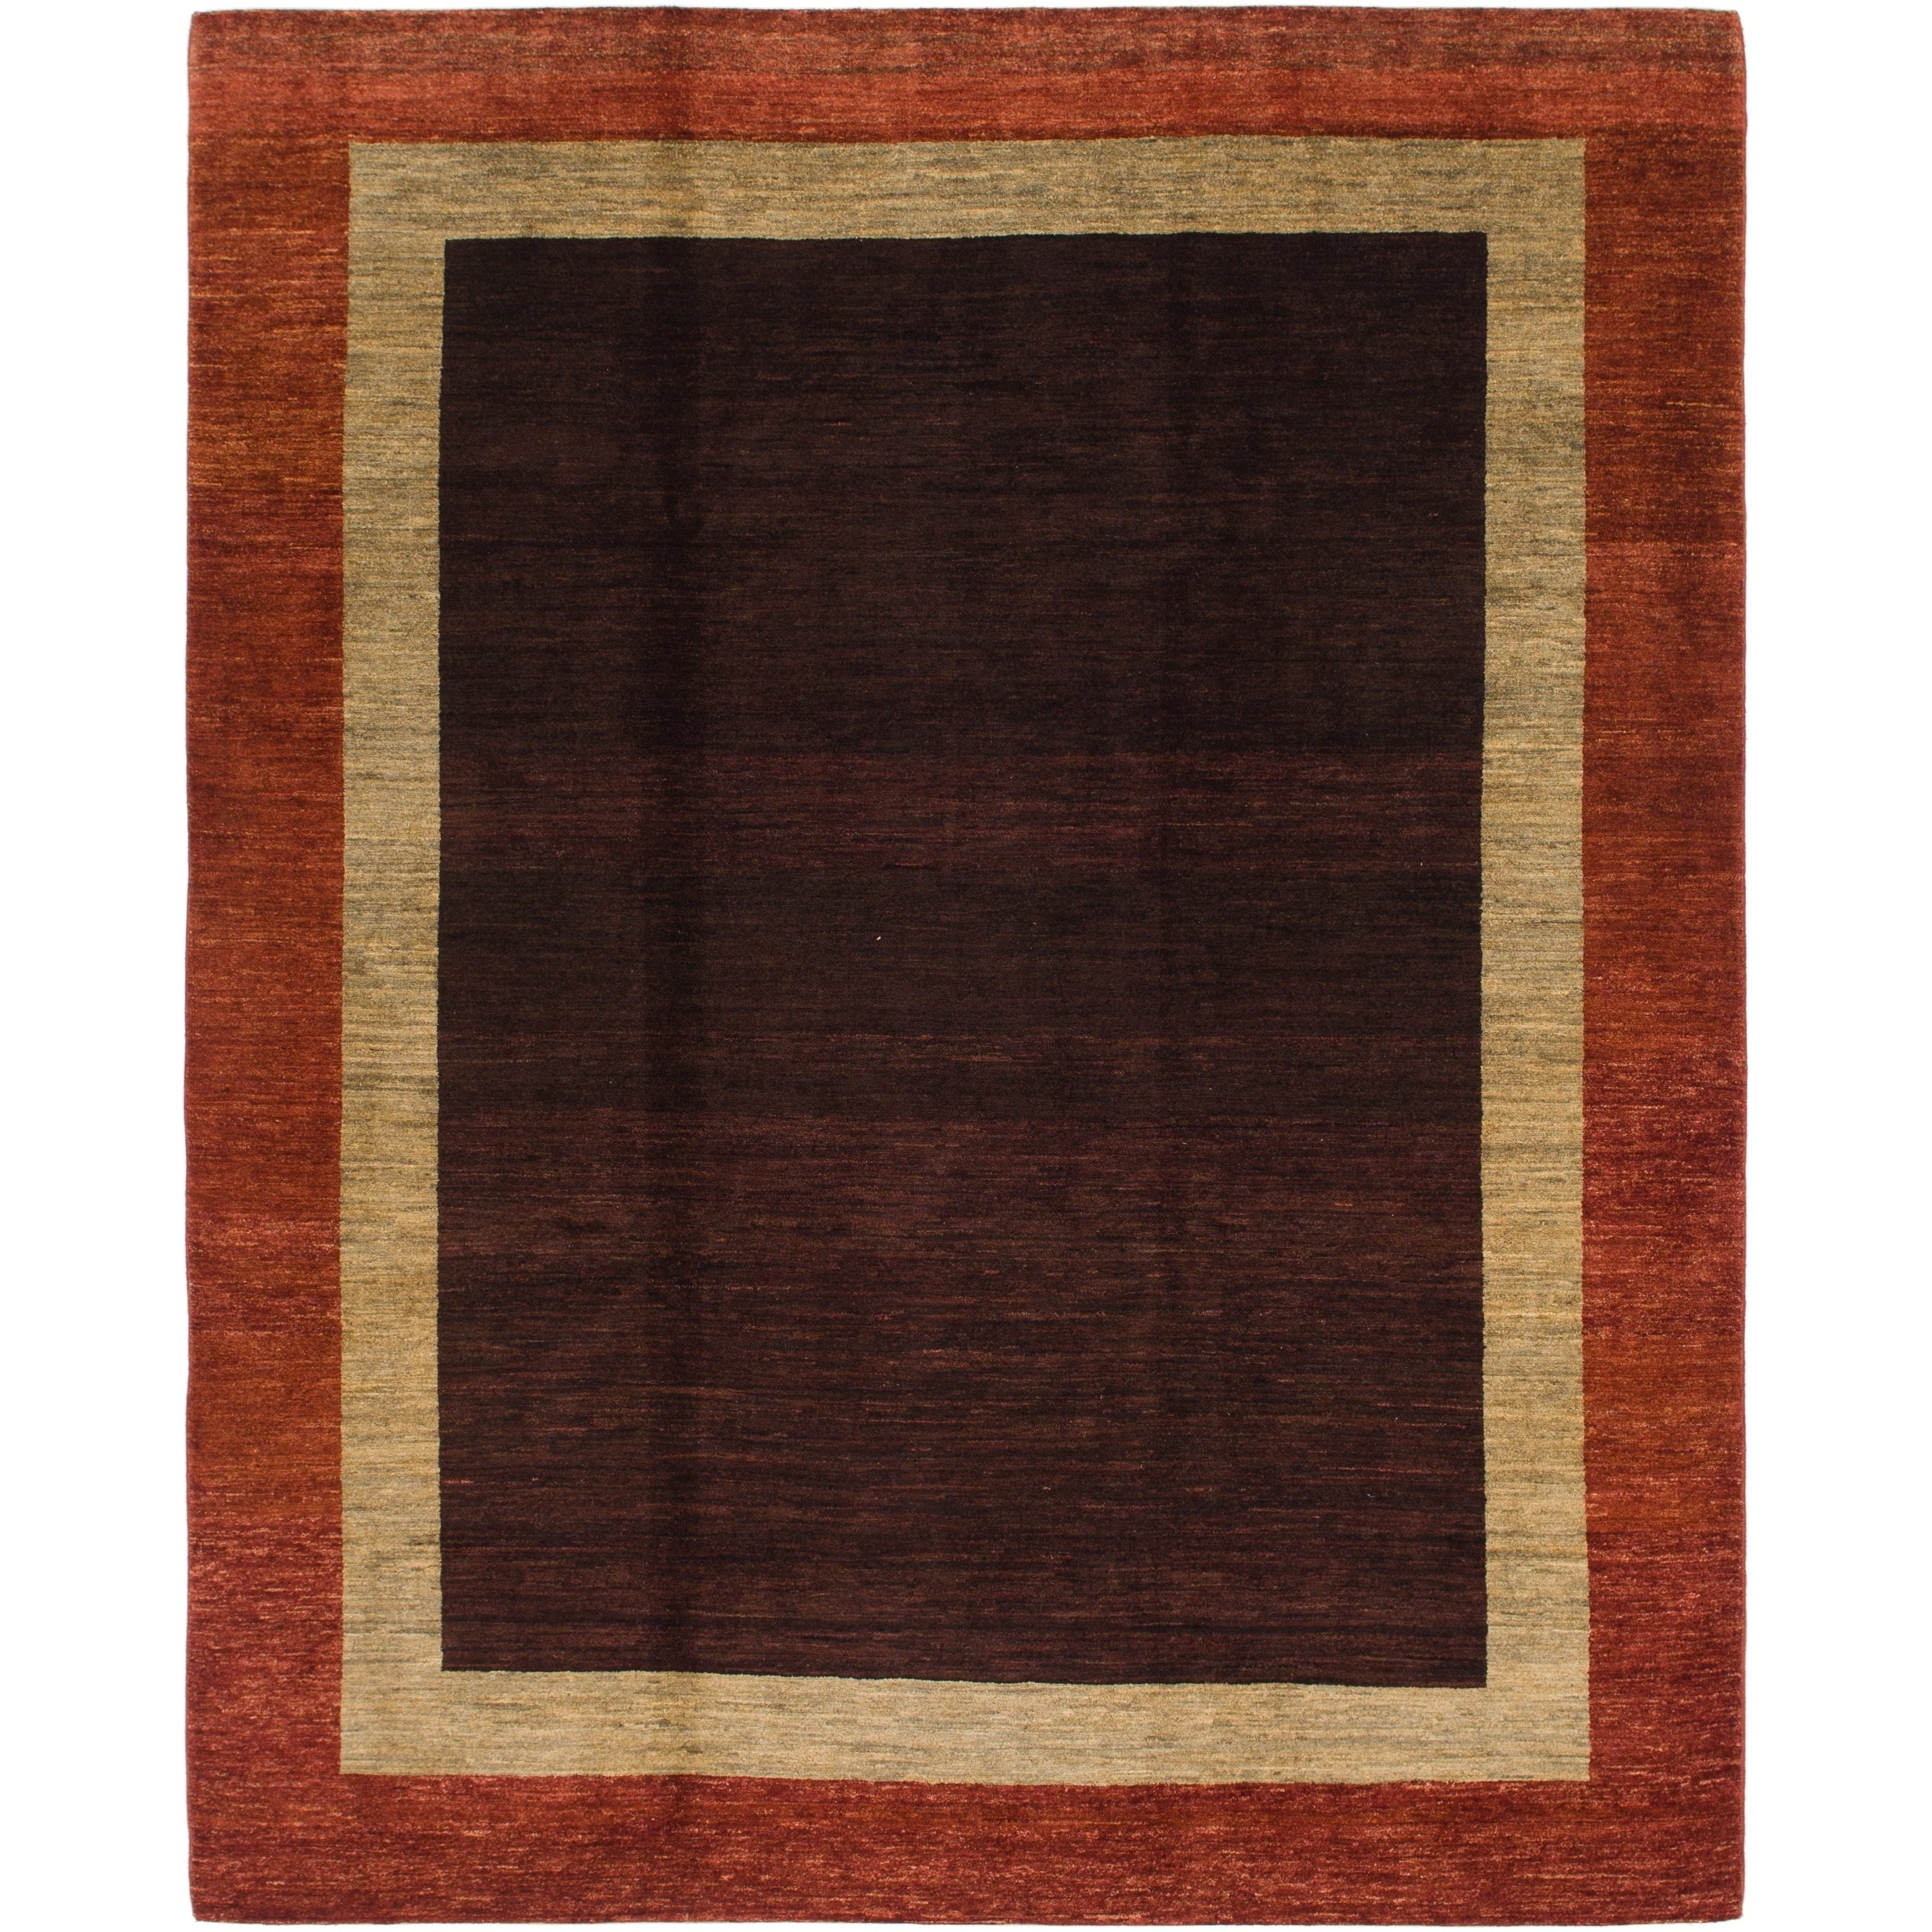 Hand Knotted Kashkuli Gabbeh Wool Area Rug - 8 x 10 (Burgundy - 8 x 10)